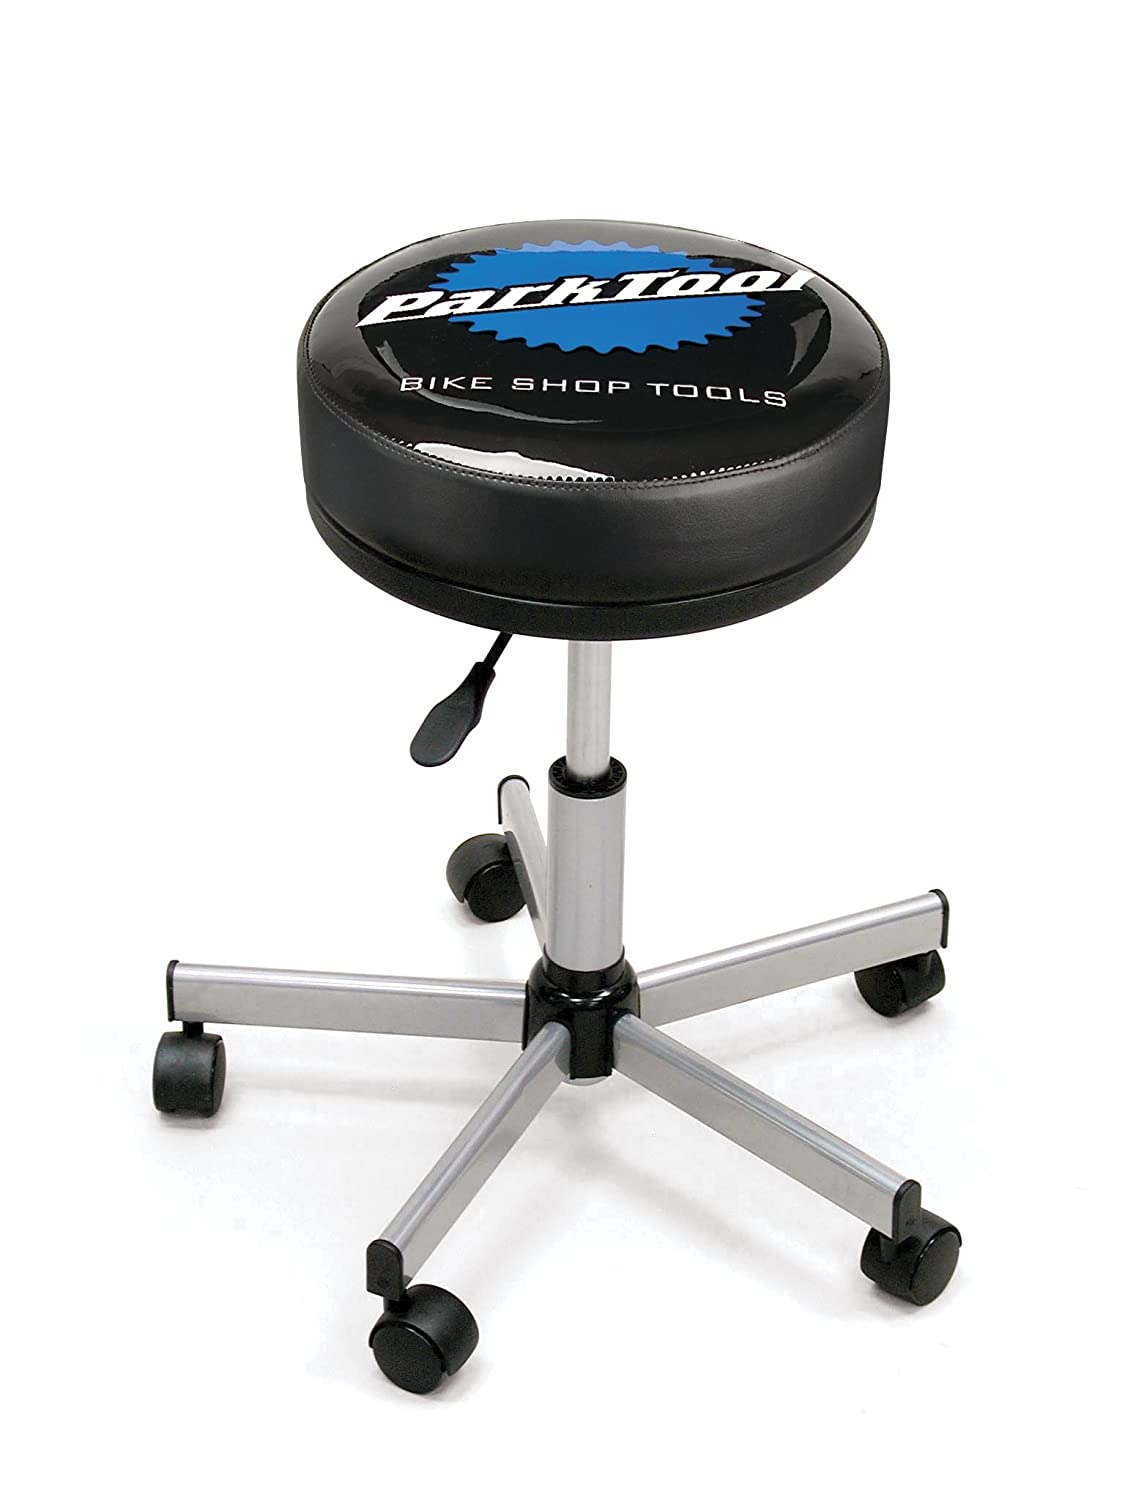 Amazon.com  Park Tool Rolling Adjustable Height Shop Stool  Step Stools  Sports u0026 Outdoors  sc 1 st  Amazon.com : mechanics stool amazon - islam-shia.org